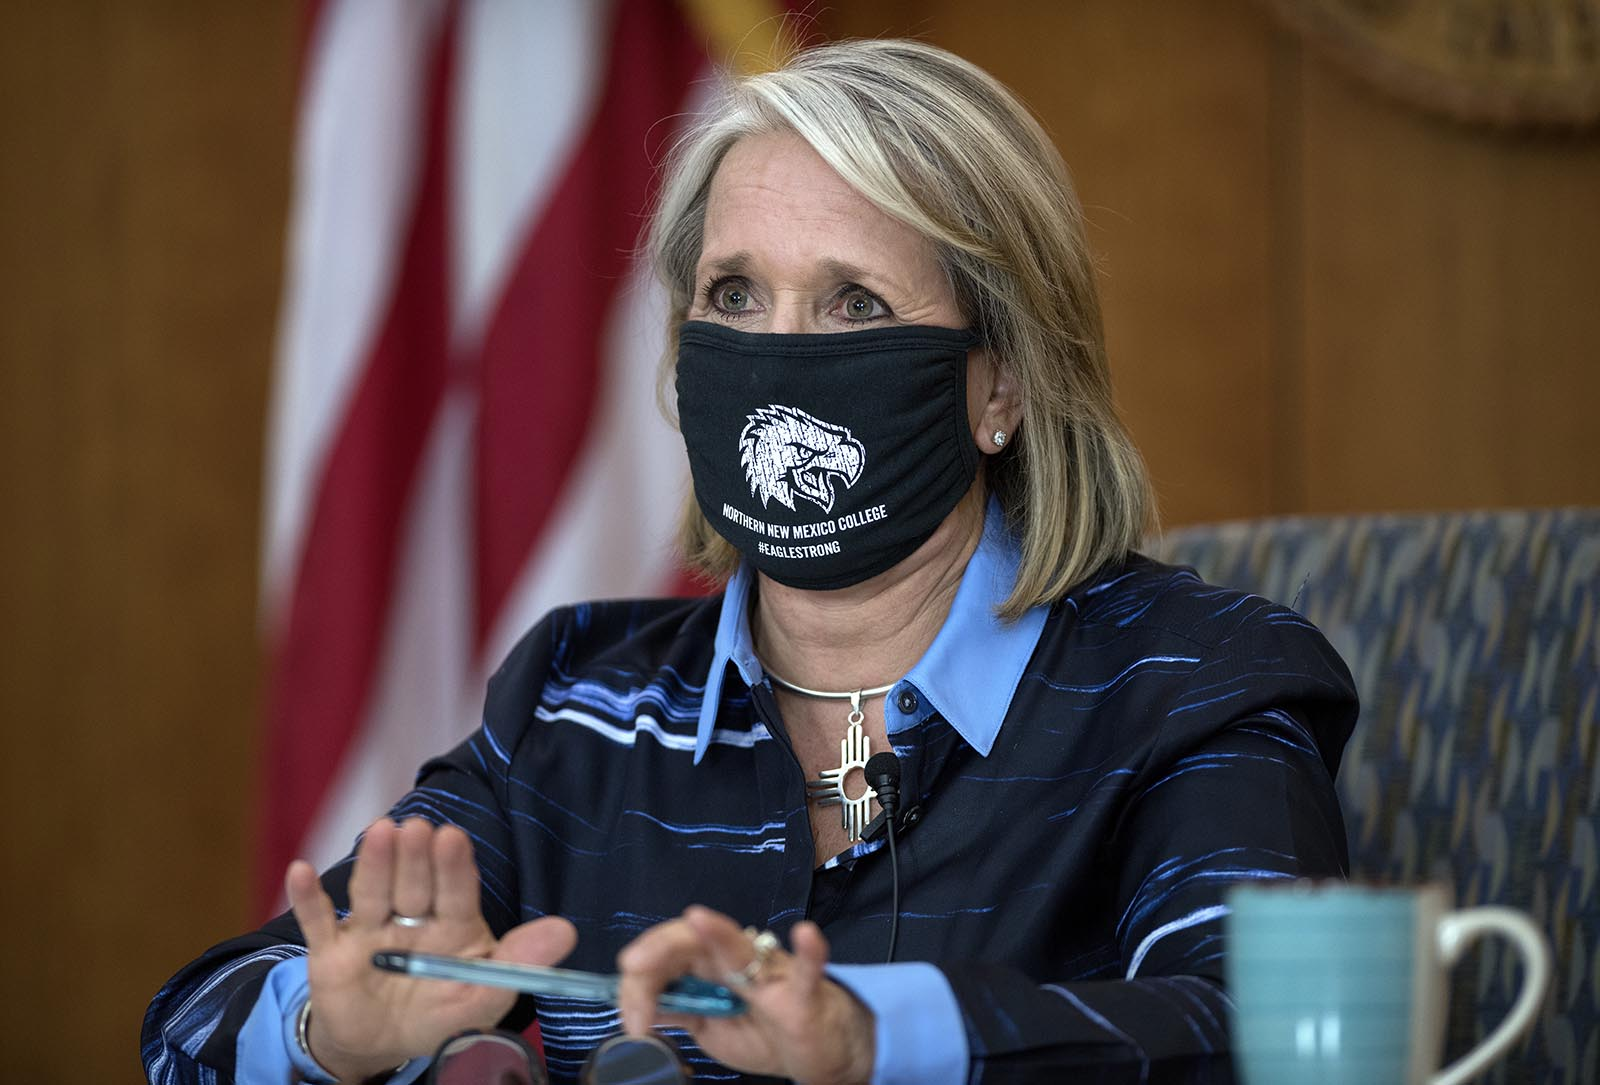 New Mexico Gov. Michelle Lujan Grisham gives her weekly update on Covid-19 and the state's effort to contain it during a virtual news conference from the state Capitol in Santa Fe, New Mexico, on Thursday, July 23.